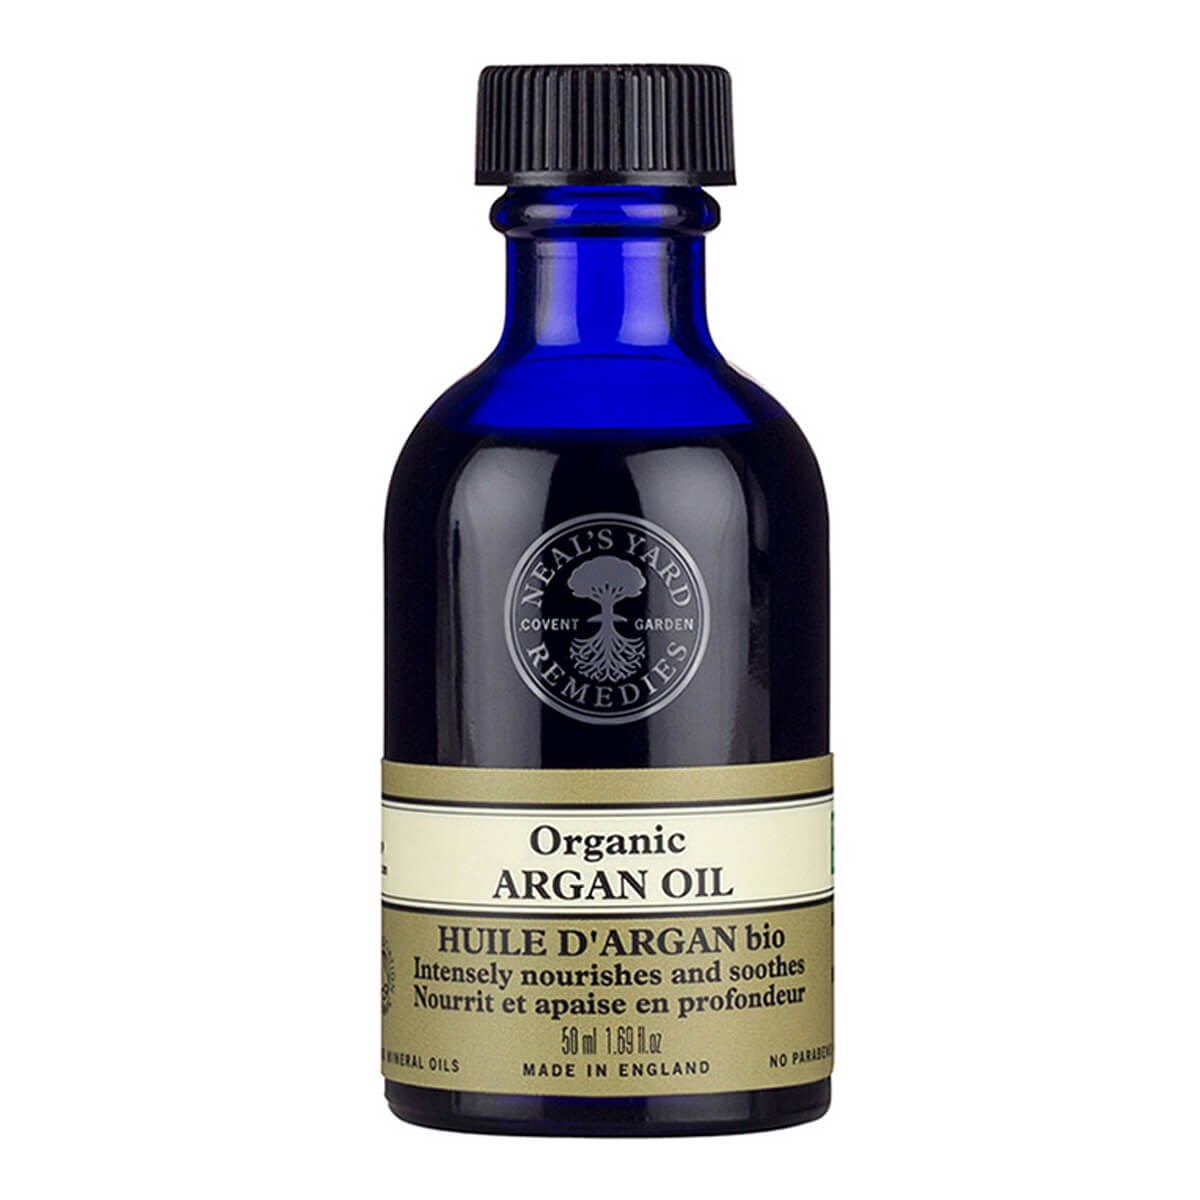 Neal's Yard Remedies Organic Argan Oil